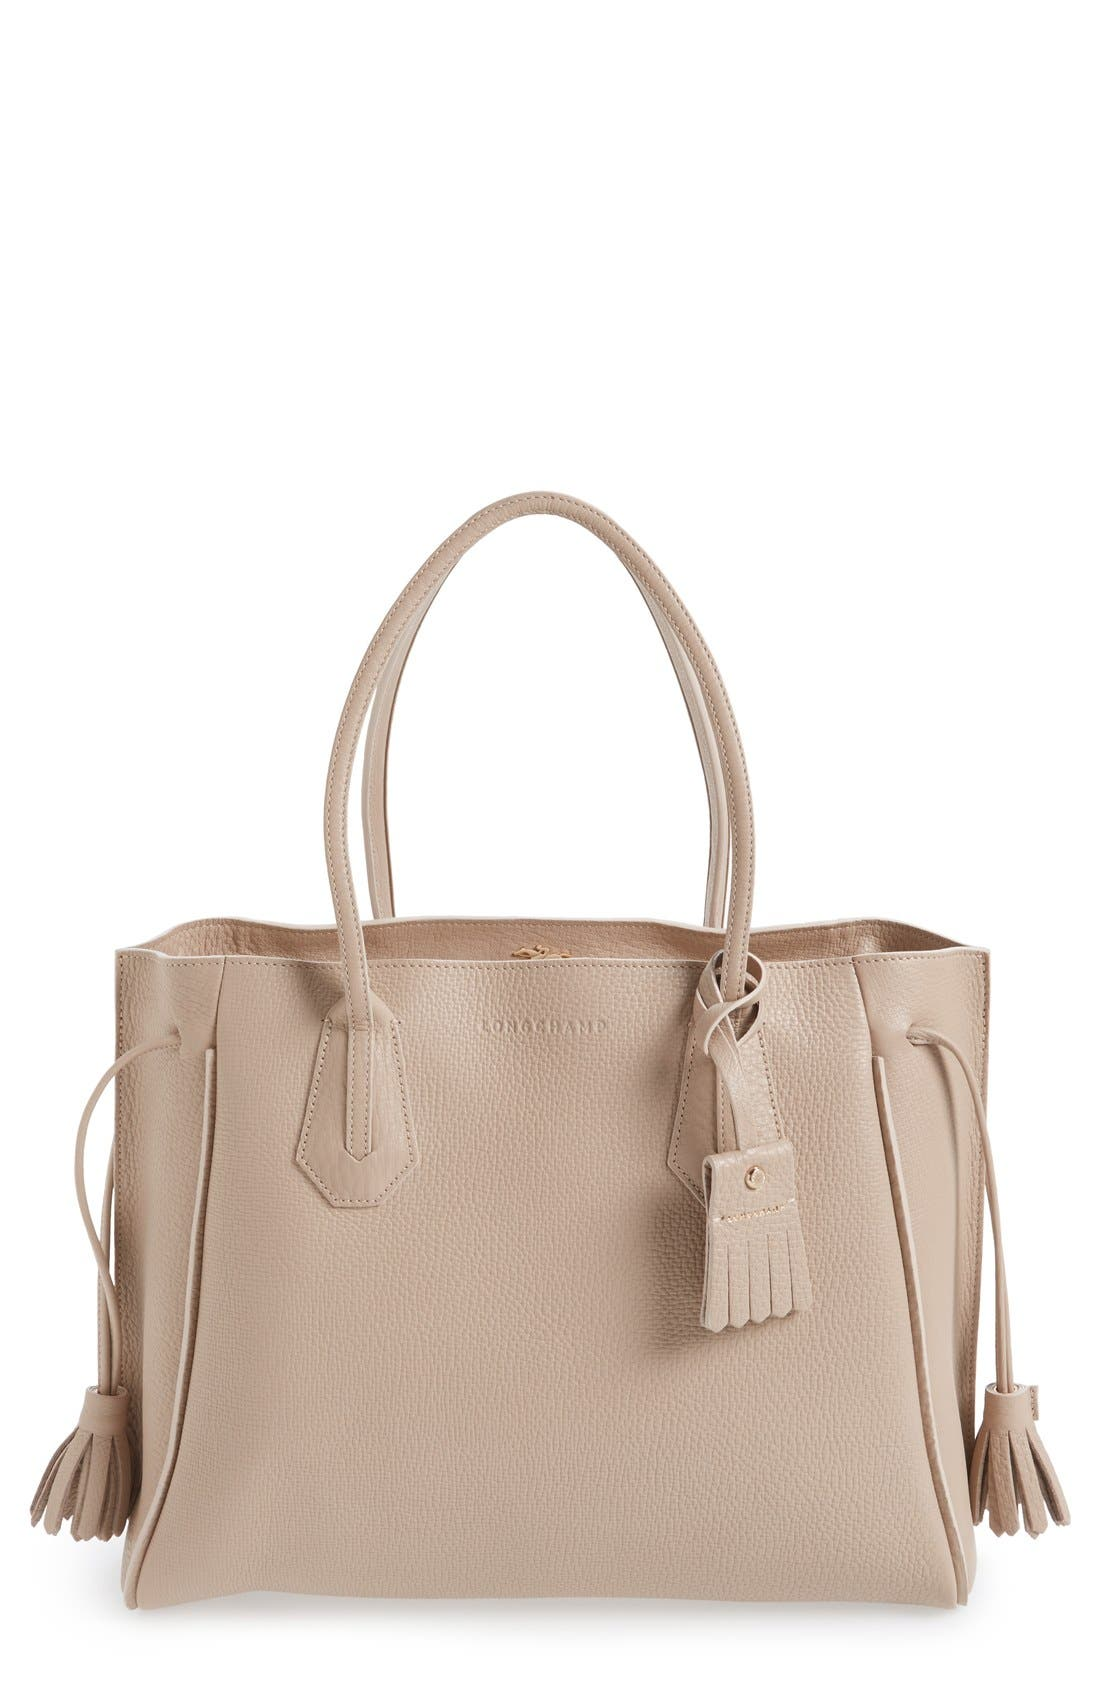 Longchamp 'Penelope' Tassel Drawstring Leather Tote